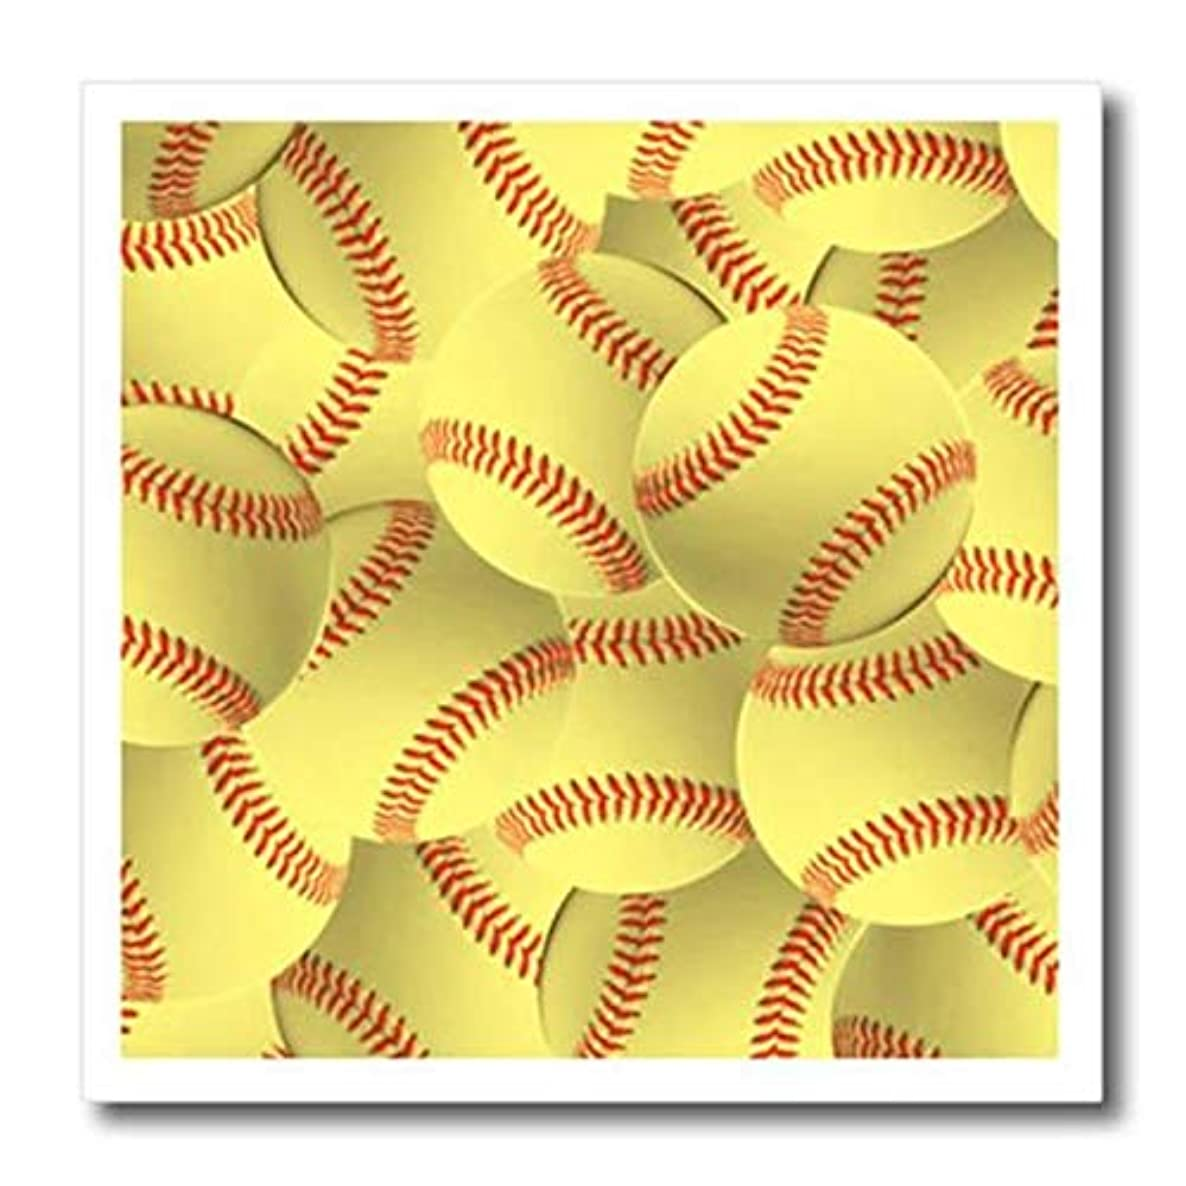 3dRose Softball Pattern-Yellow red Stitched Soft Ball Sporty-Sporting Game-Team Jock-Iron On Heat Transfer, 10-inch, for White Material (ht_161324_3)